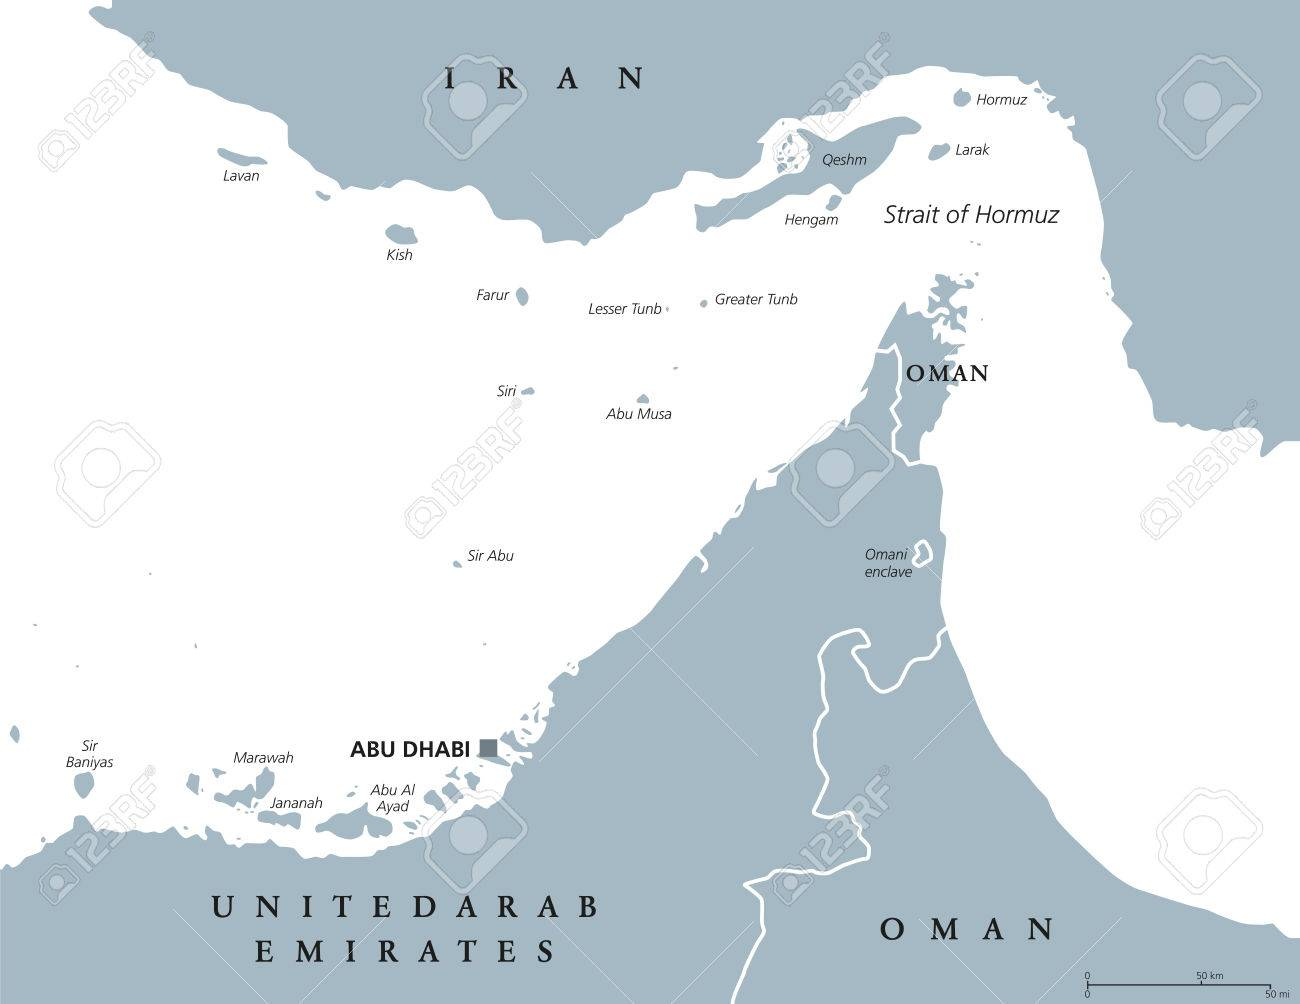 Gulf Of Oman Map Oman Leaders World Cycle Ride Cycling Stew - Oman in world map